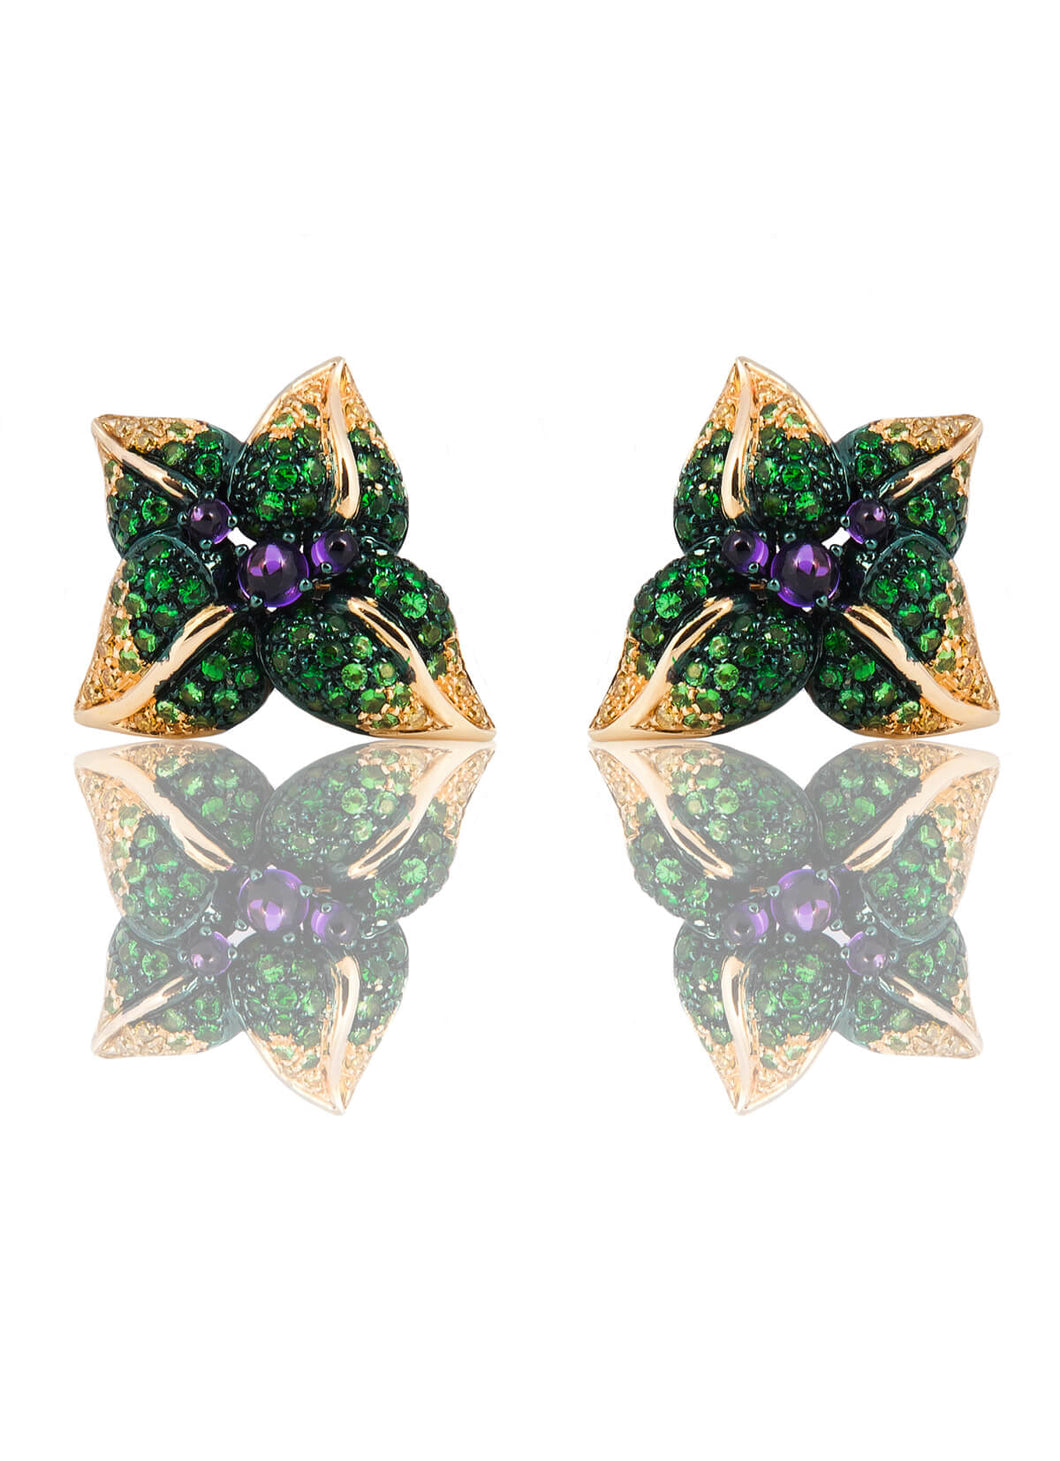 Iconic Emilia Stud Leaves Earrings